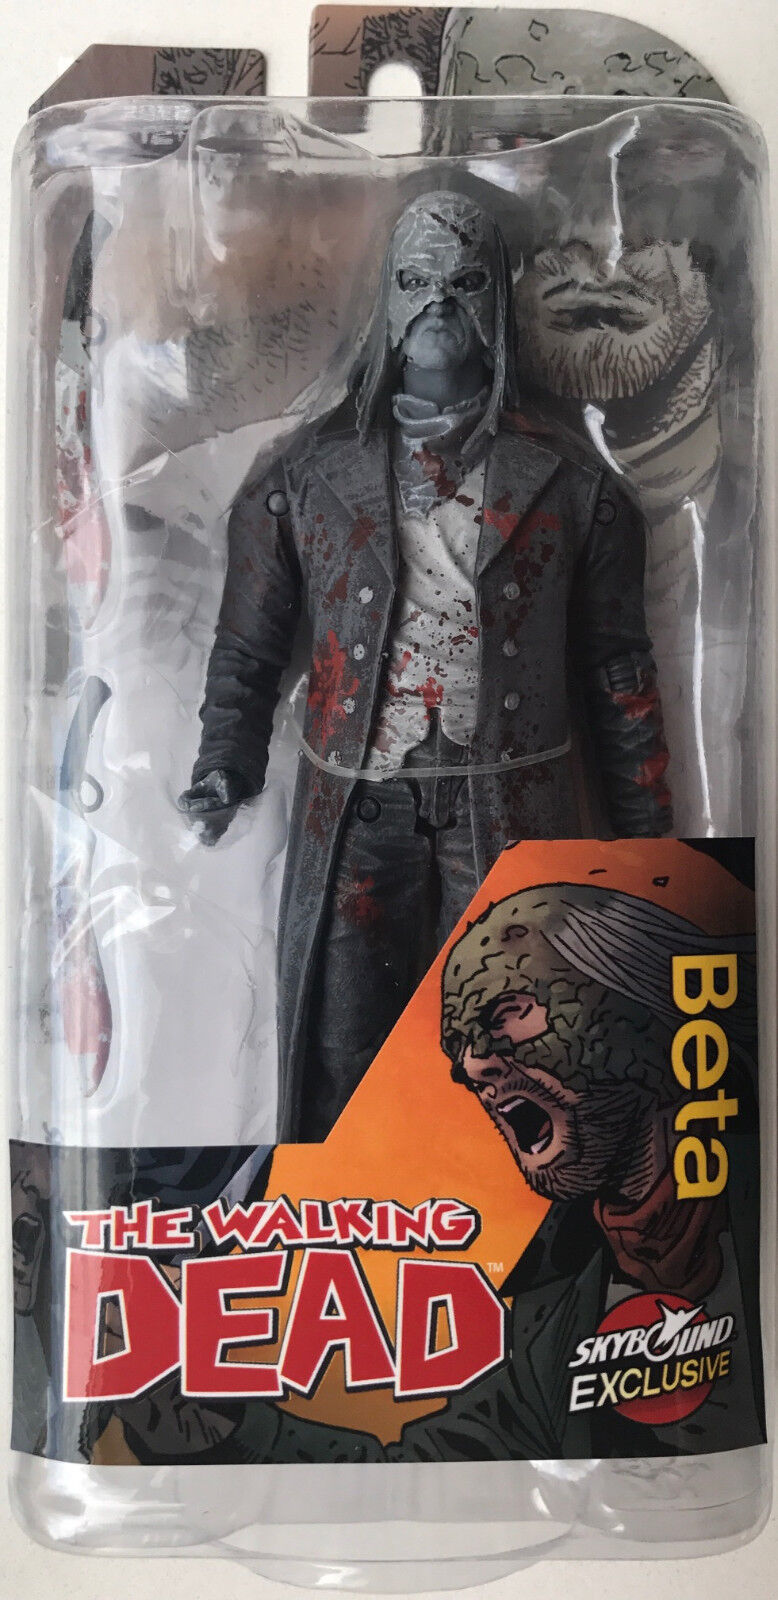 McFARLANE THE WALKING DEAD EXCLUSIVE BETA BLOODY 6  ACTION FIGURE NYCC 2017